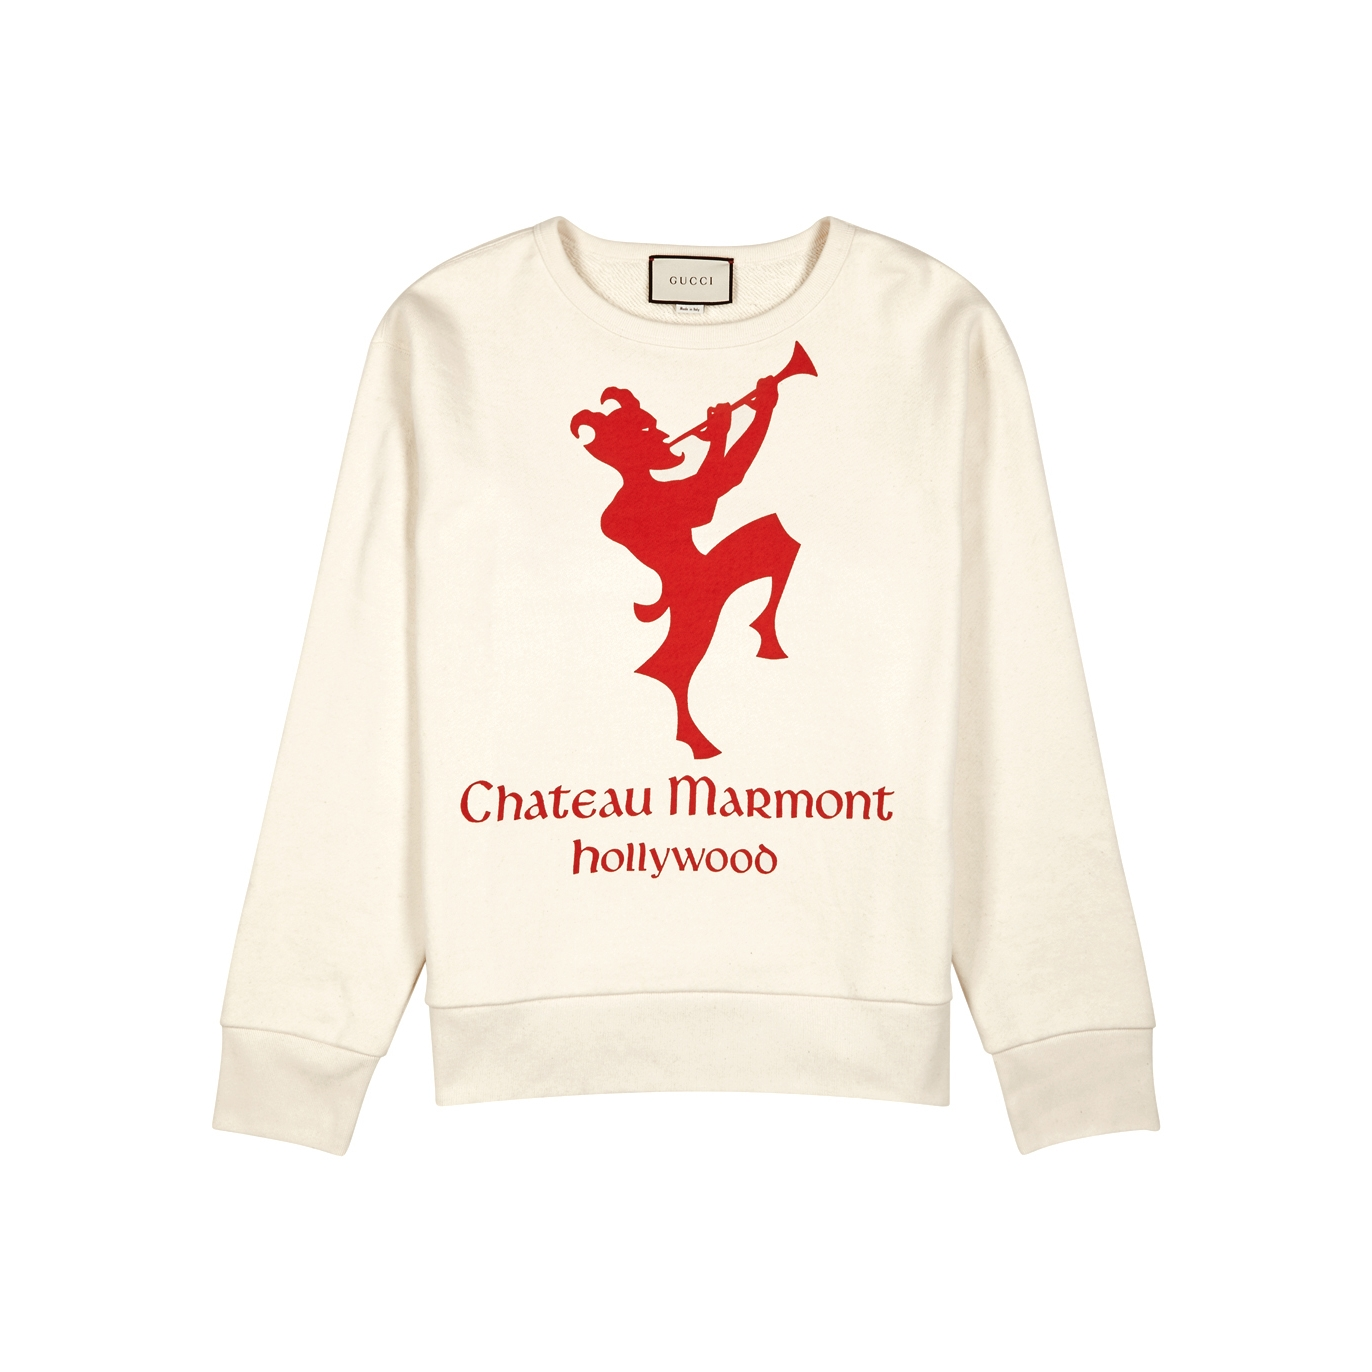 66dc98acc61 Gucci Marmont printed cotton sweatshirt - Harvey Nichols